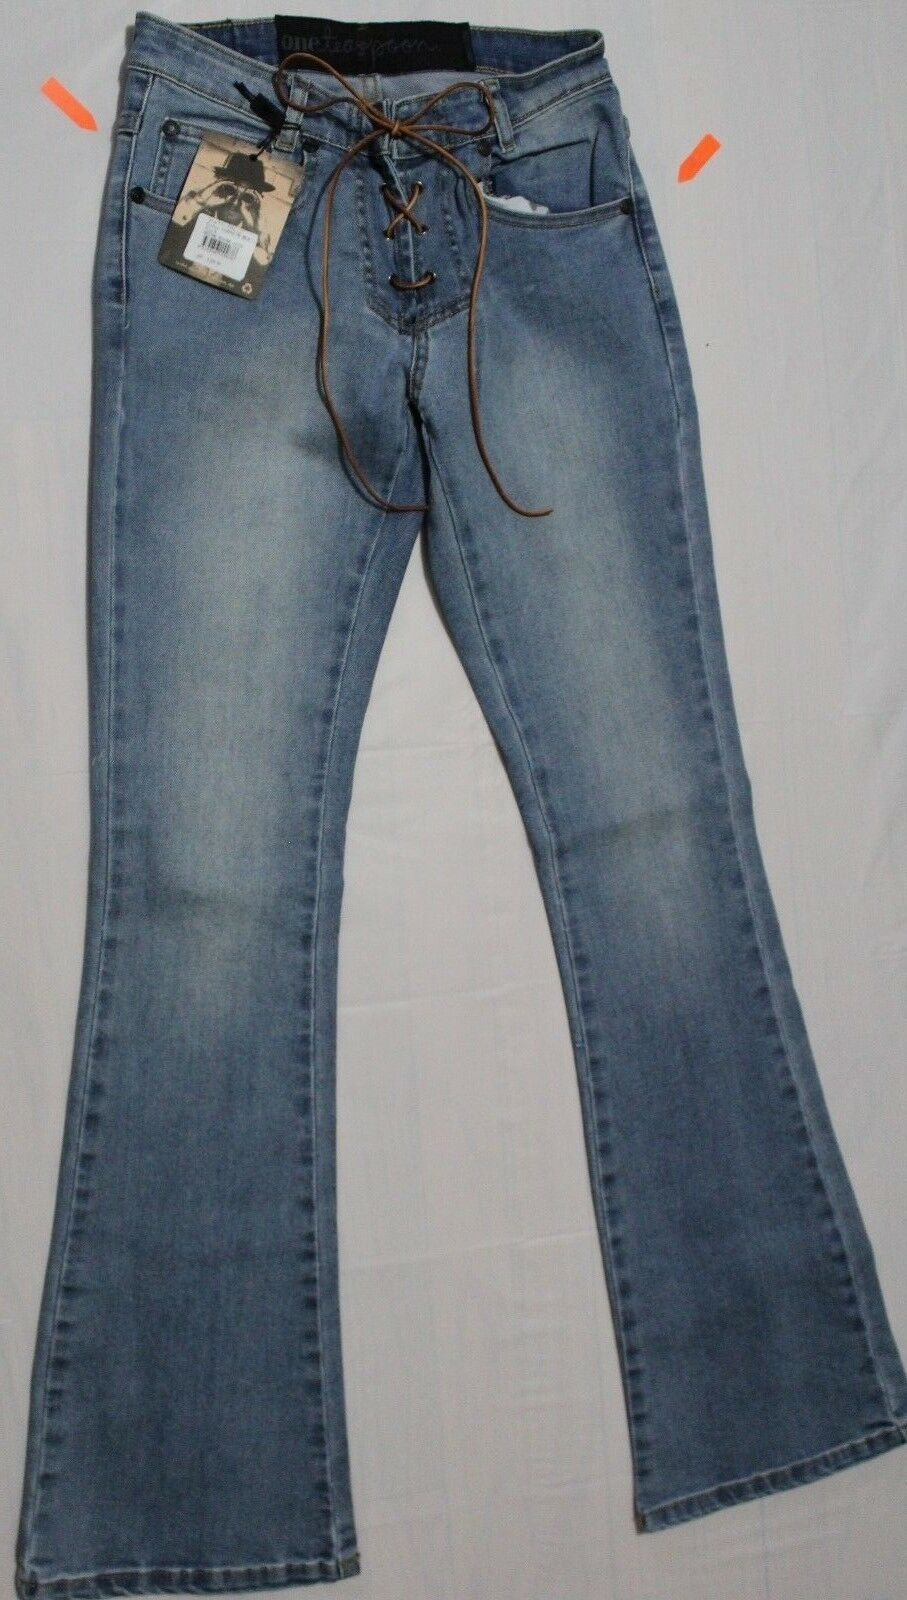 200 ONE TABLESPOON SISSY COBAINE blue LACE UP FLARE JEANS US 8